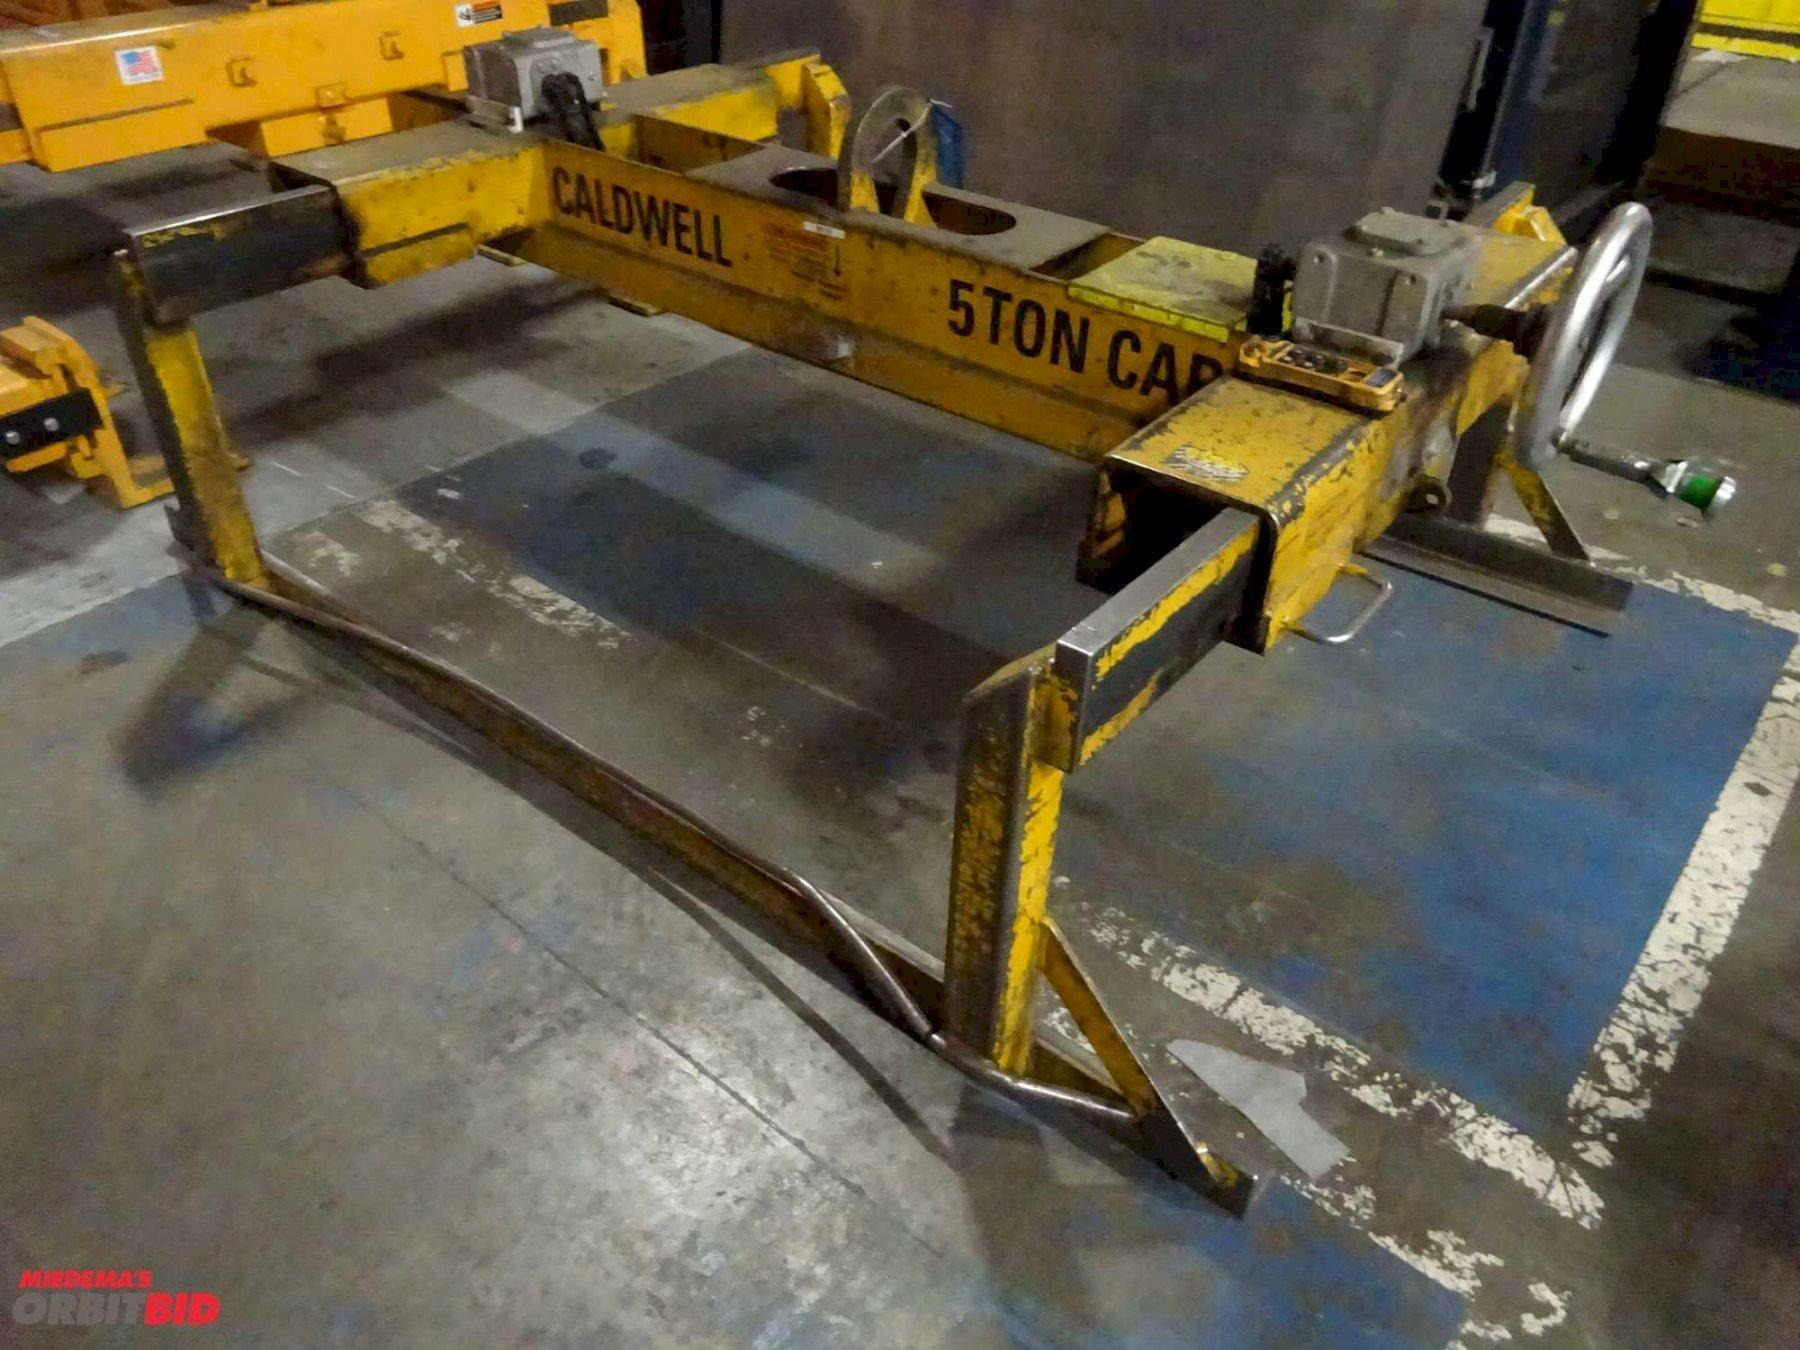 10,000 LBS CALDWELL ADJUSTABLE SHEET LIFTER. STOCK # 0613920